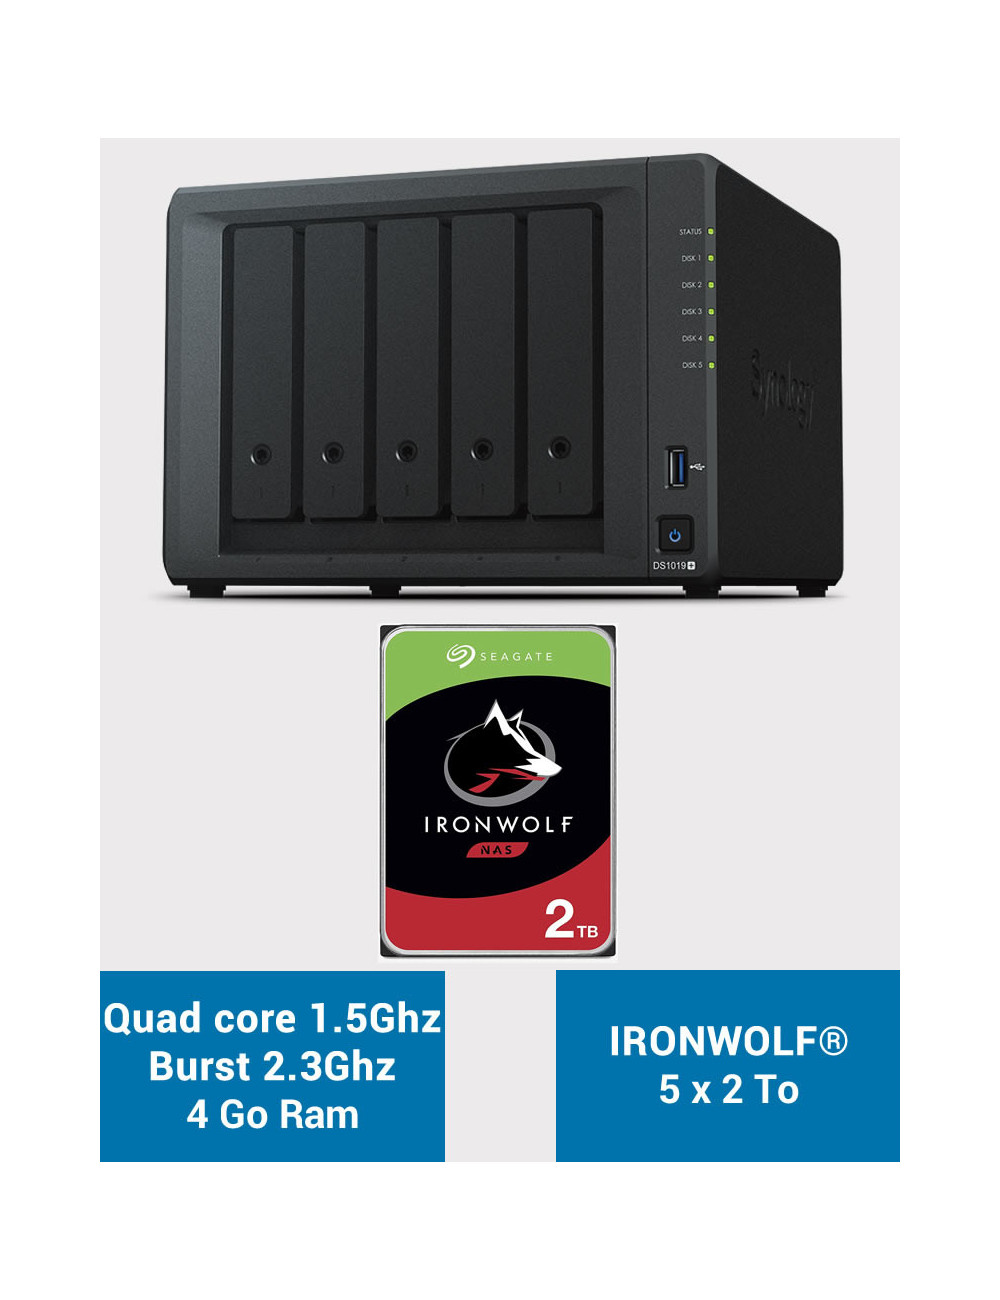 Synology DS1019+ Serveur NAS IRONWOLF 10To (5x2To)